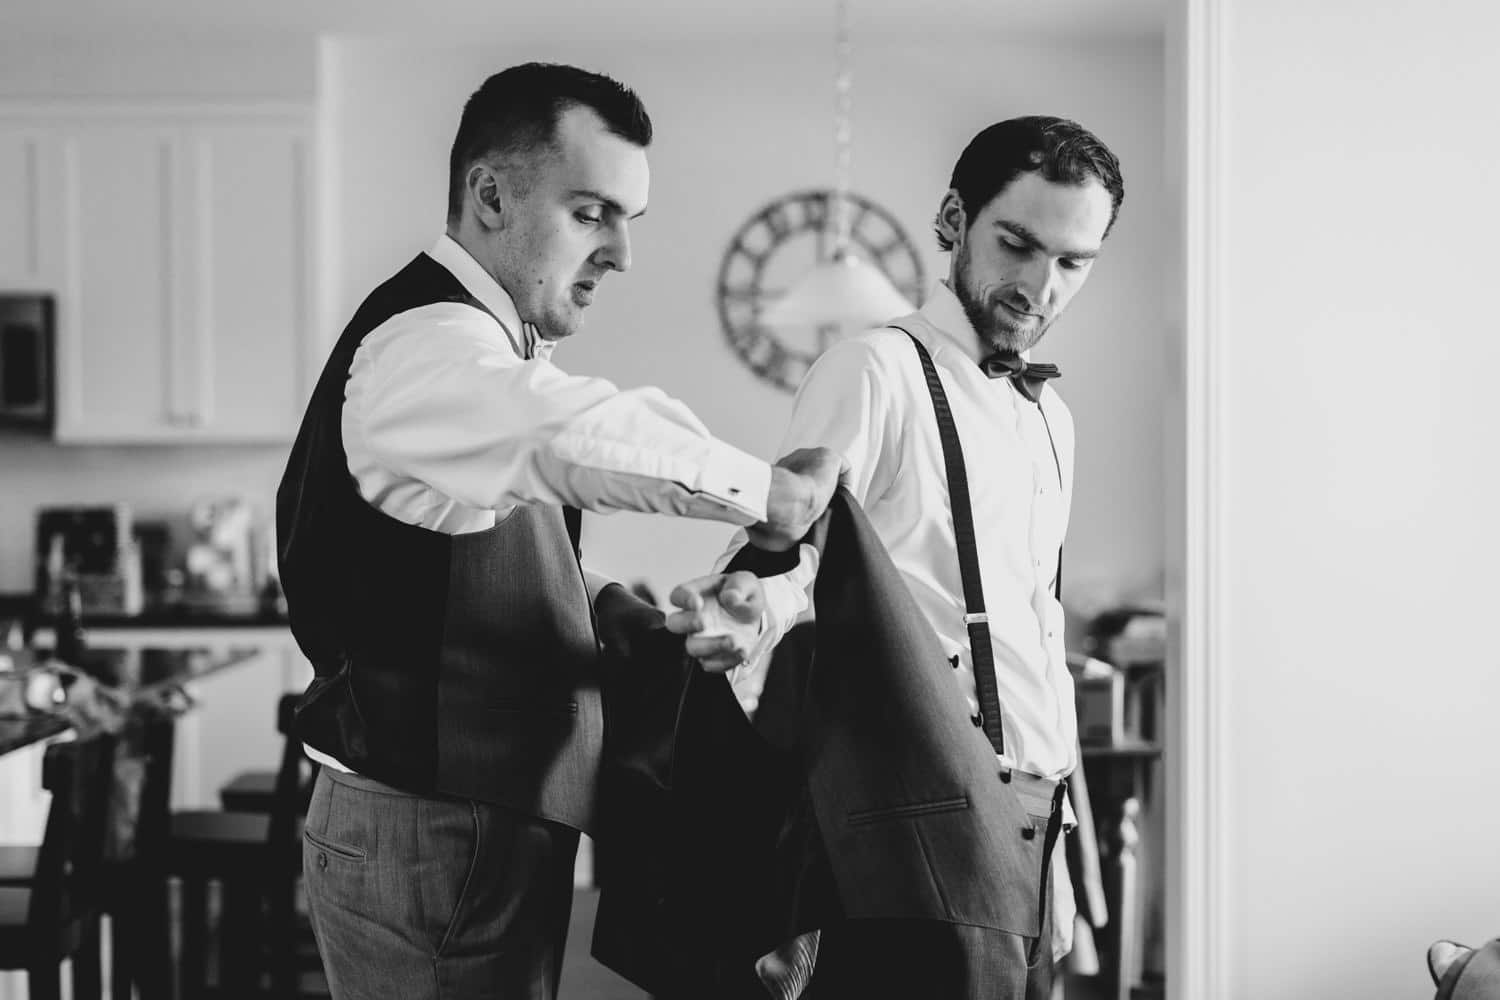 groom's brother helps him put his vest on